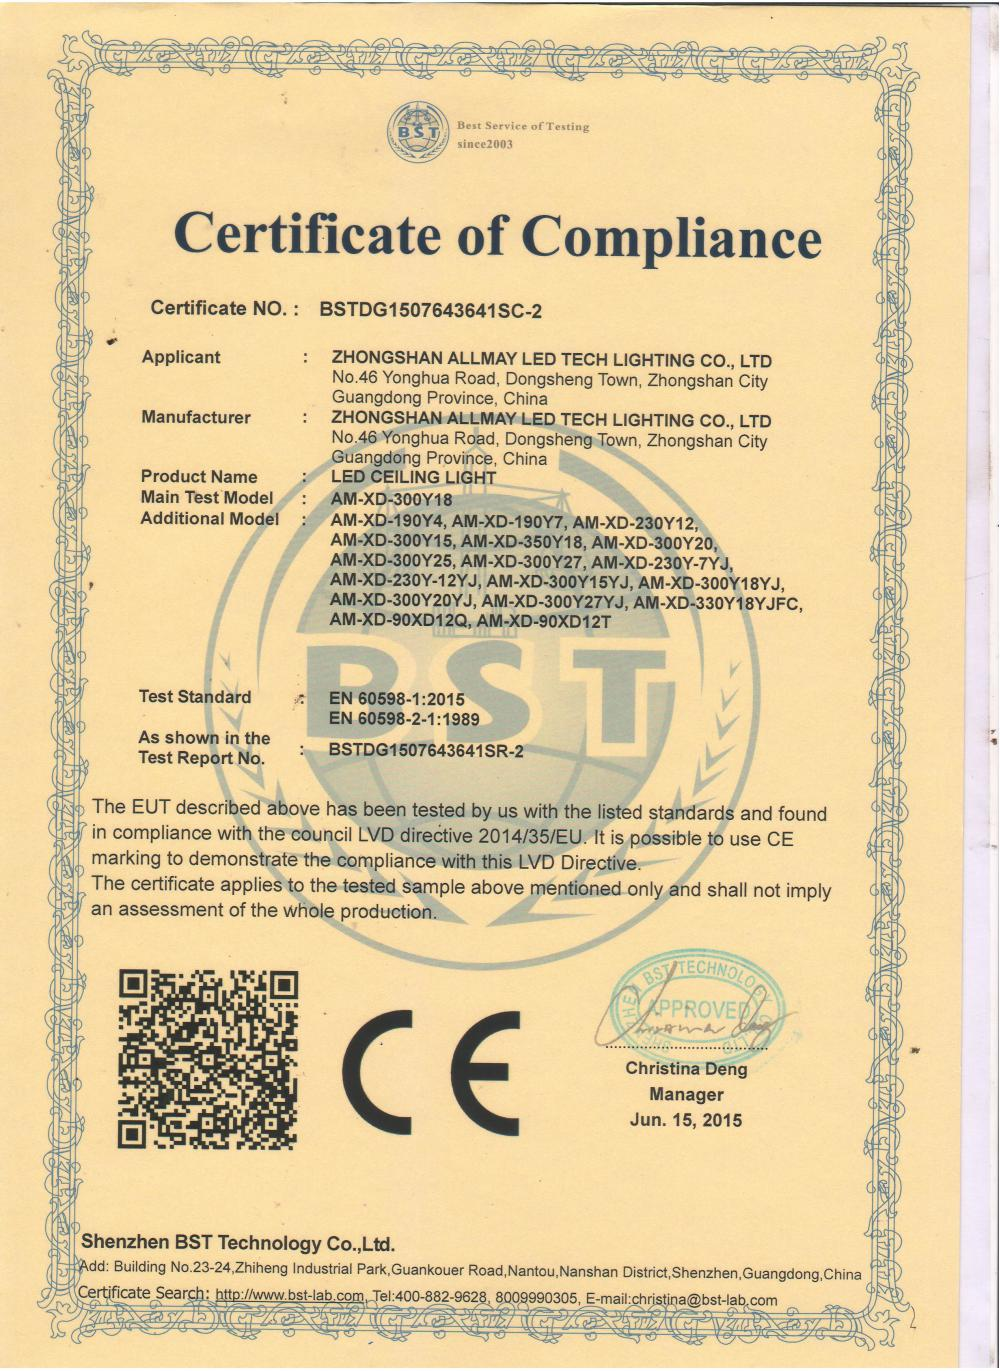 CE LVD Certificate of LED Ceiling light